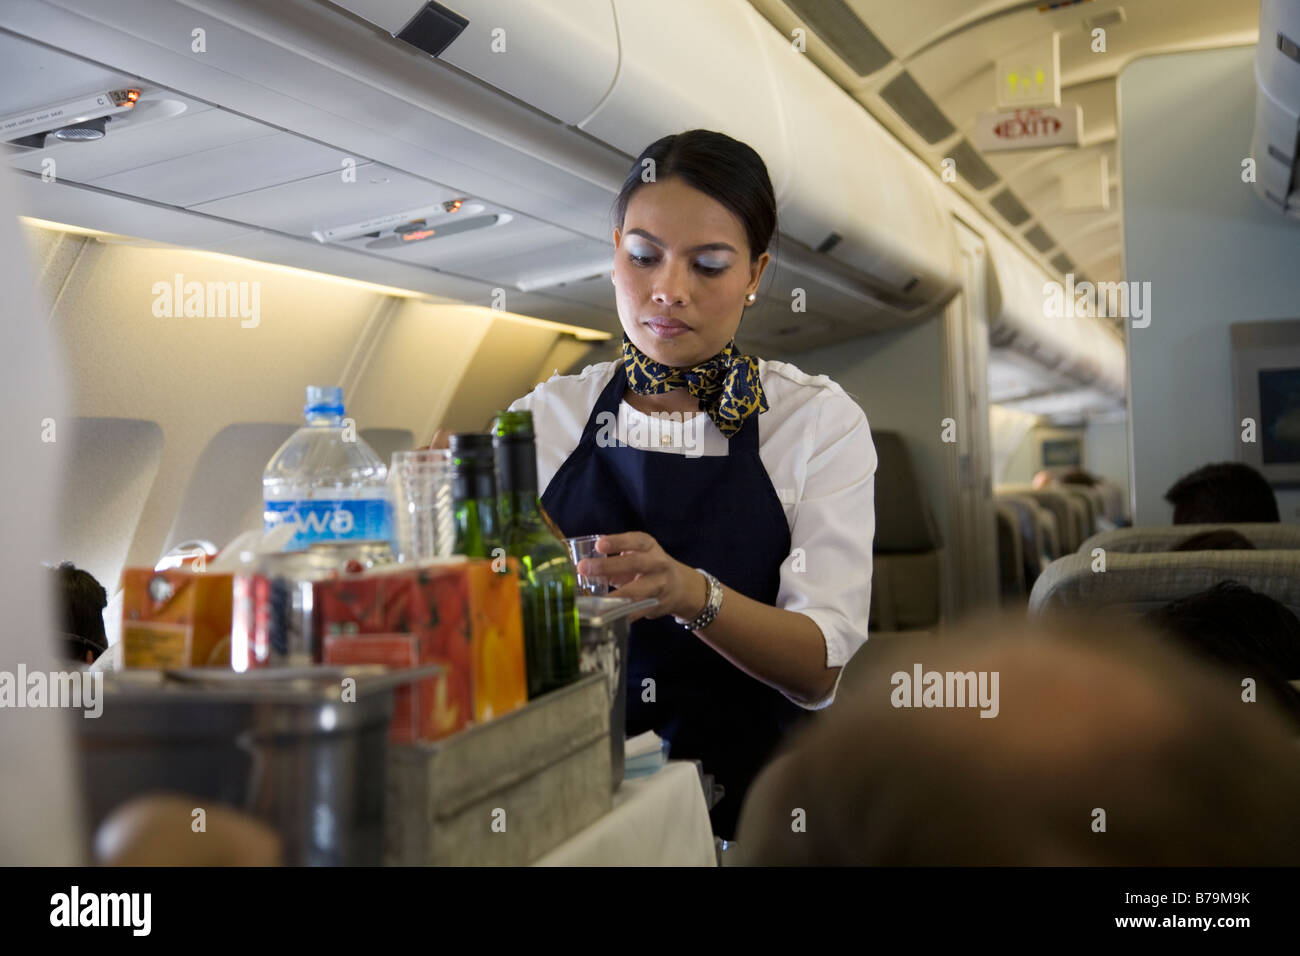 Cabin crew / air stewardess serves drinks to passengers from a trolley cart during a flight (45) Stock Photo